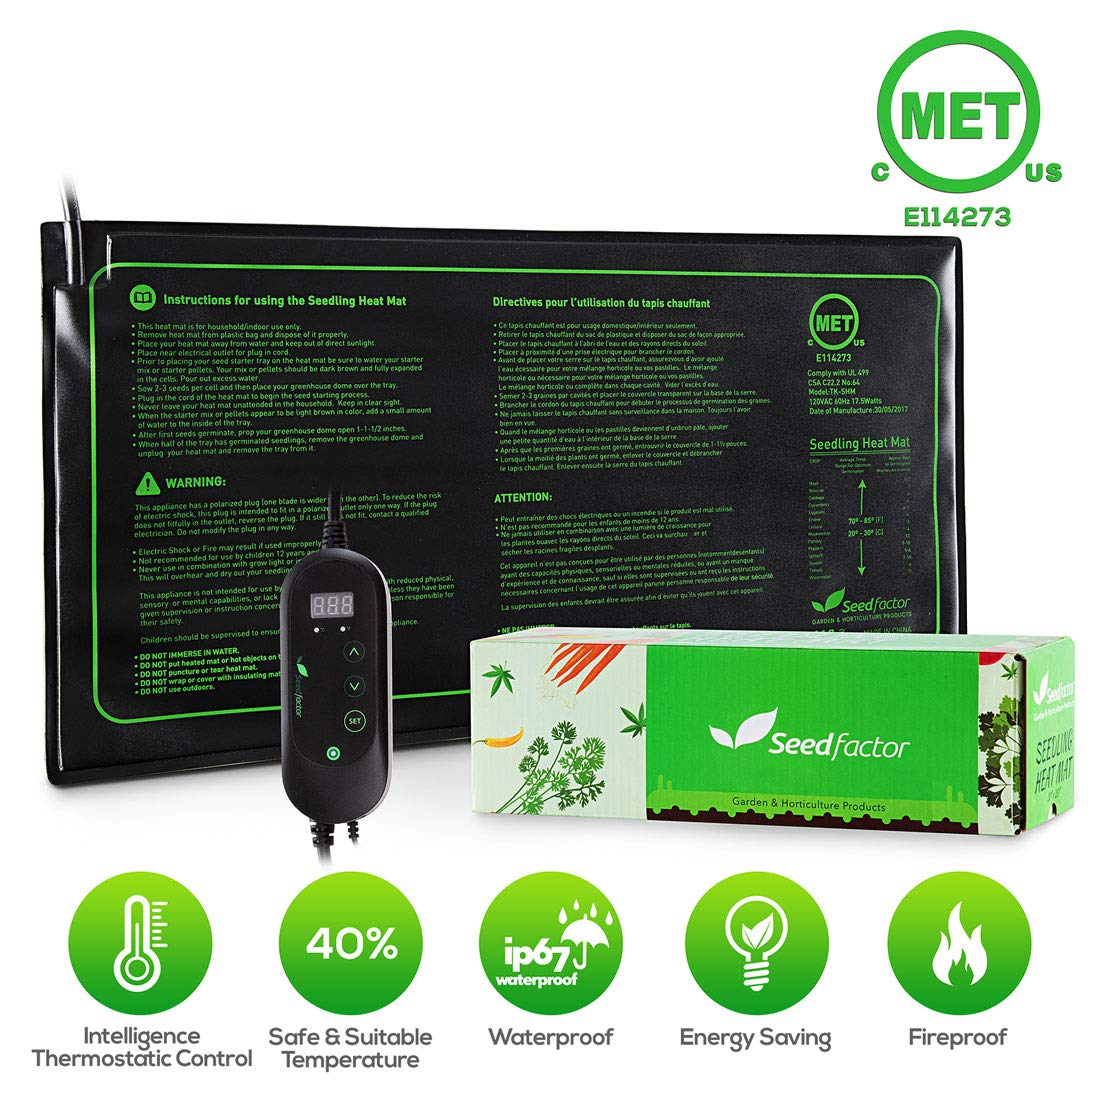 "Seedfactor MET certified Seedling Heat Mat with 50℉~108℉ Digital Thermostat Controller for Seed Germination (10"" x 20"")"